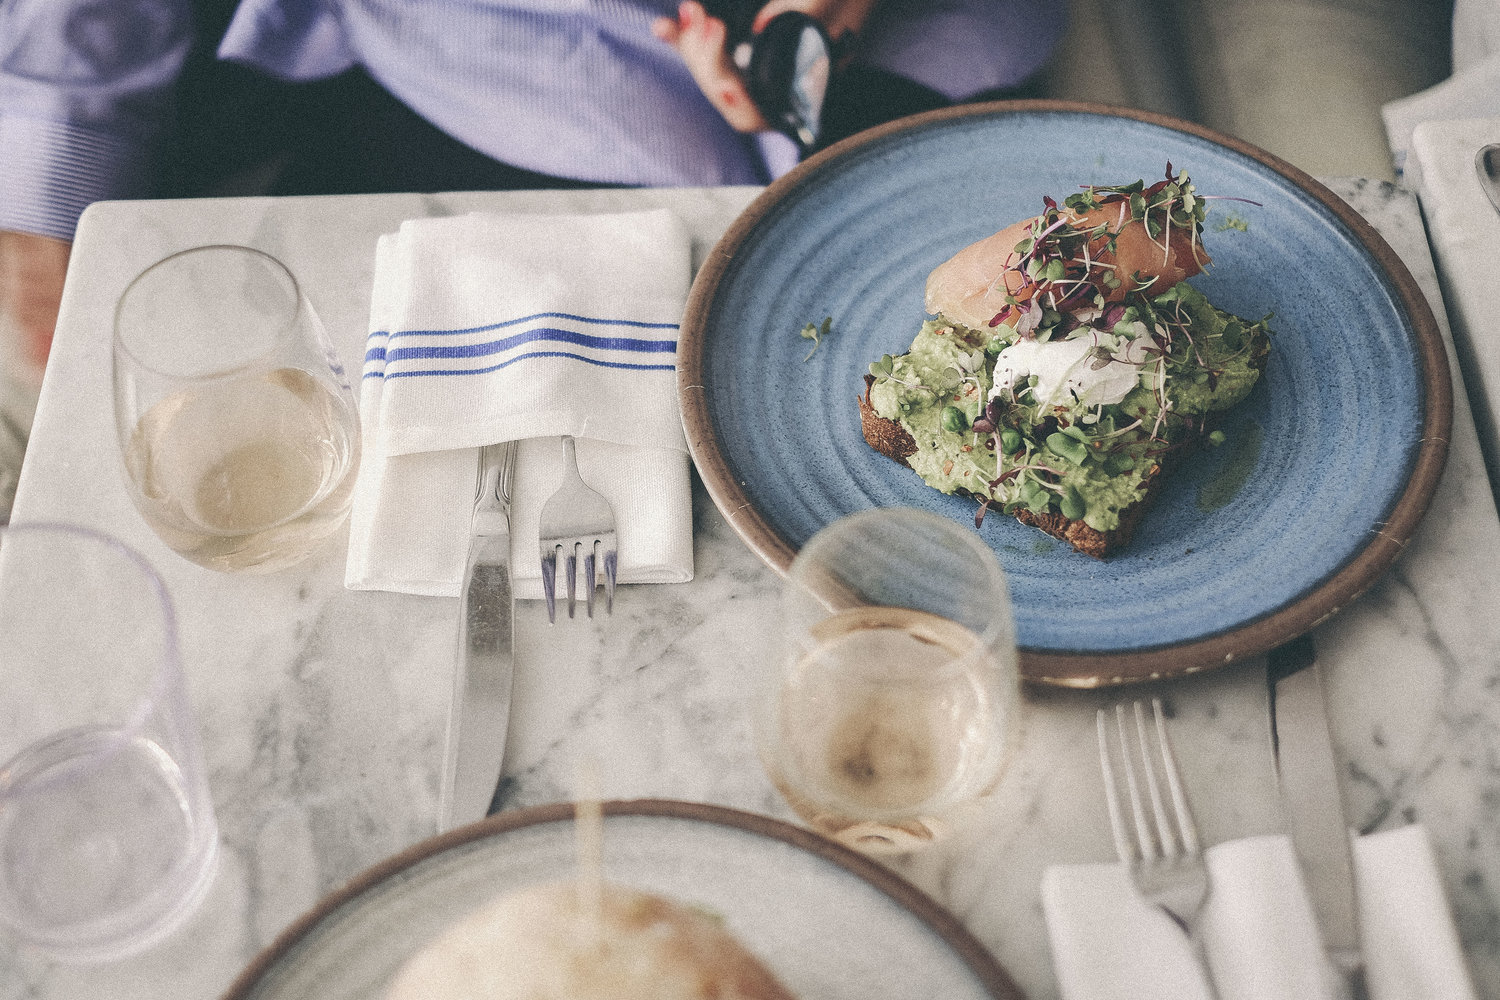 Table top at Bluestone Lane with white wine and an Avo Smash with an egg and smoked salmon.